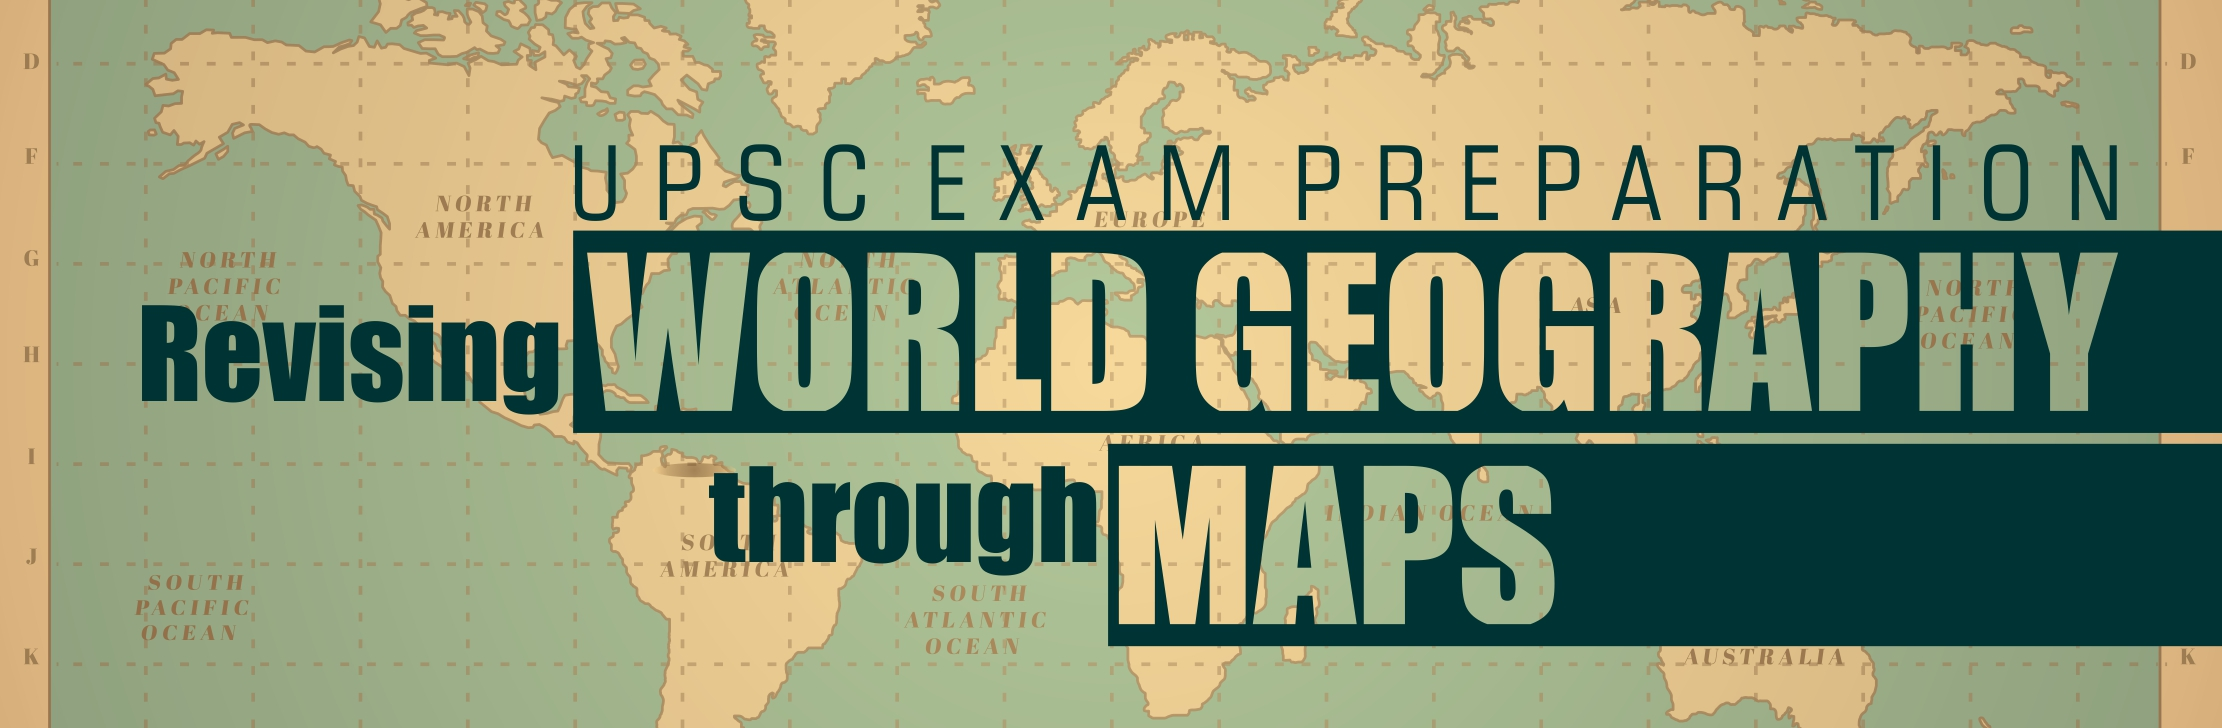 UPSC Exam Preparation- Revising World Geography through Maps